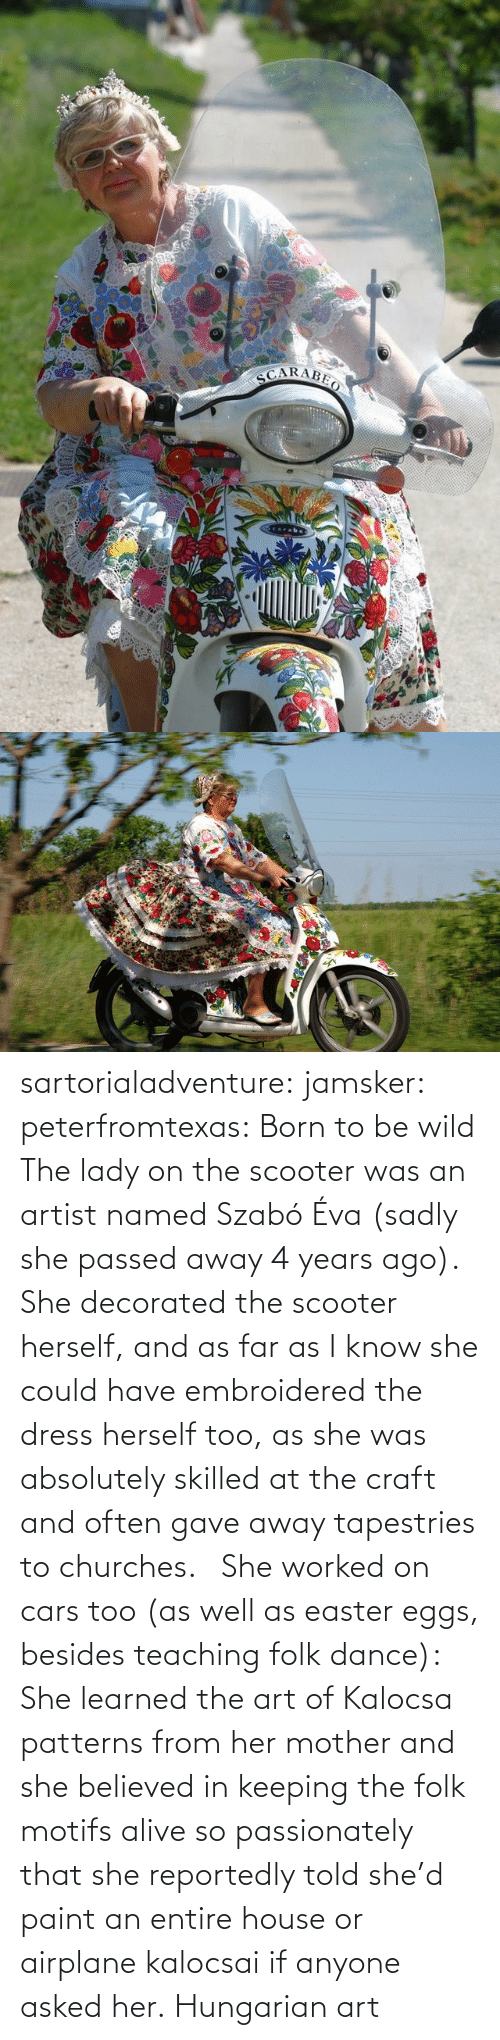 learned: sartorialadventure: jamsker:  peterfromtexas: Born to be wild The lady on the scooter was an artist named Szabó Éva (sadly she passed away 4 years ago). She decorated the scooter herself, and as far as I know she could have embroidered the dress herself too, as she was absolutely skilled at the craft and often gave away tapestries to churches.   She worked on cars too (as well as easter eggs, besides teaching folk dance): She learned the art of Kalocsa patterns from her mother and she believed in keeping the folk motifs alive so passionately that she reportedly told she'd paint an entire house or airplane kalocsai if anyone asked her.  Hungarian art